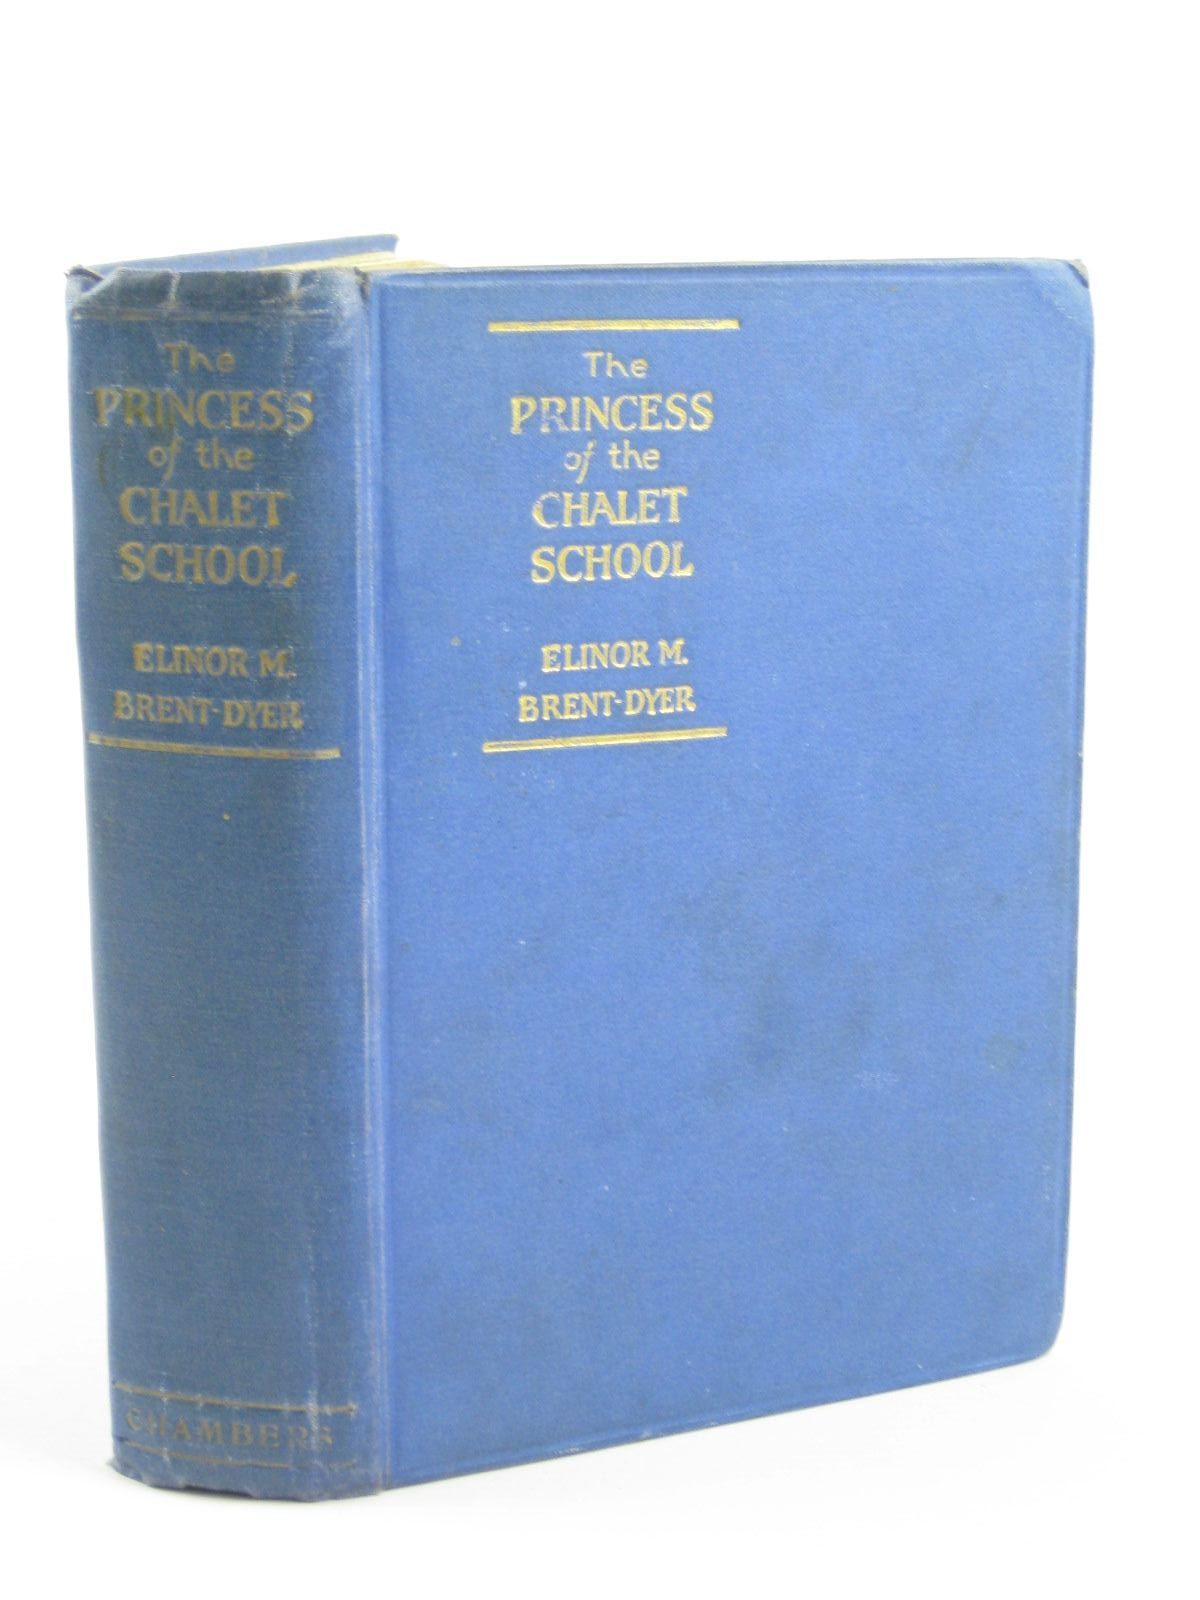 Photo of THE PRINCESS OF THE CHALET SCHOOL written by Brent-Dyer, Elinor M. illustrated by Brisley, Nina K. published by W. & R. Chambers Limited (STOCK CODE: 1310649)  for sale by Stella & Rose's Books